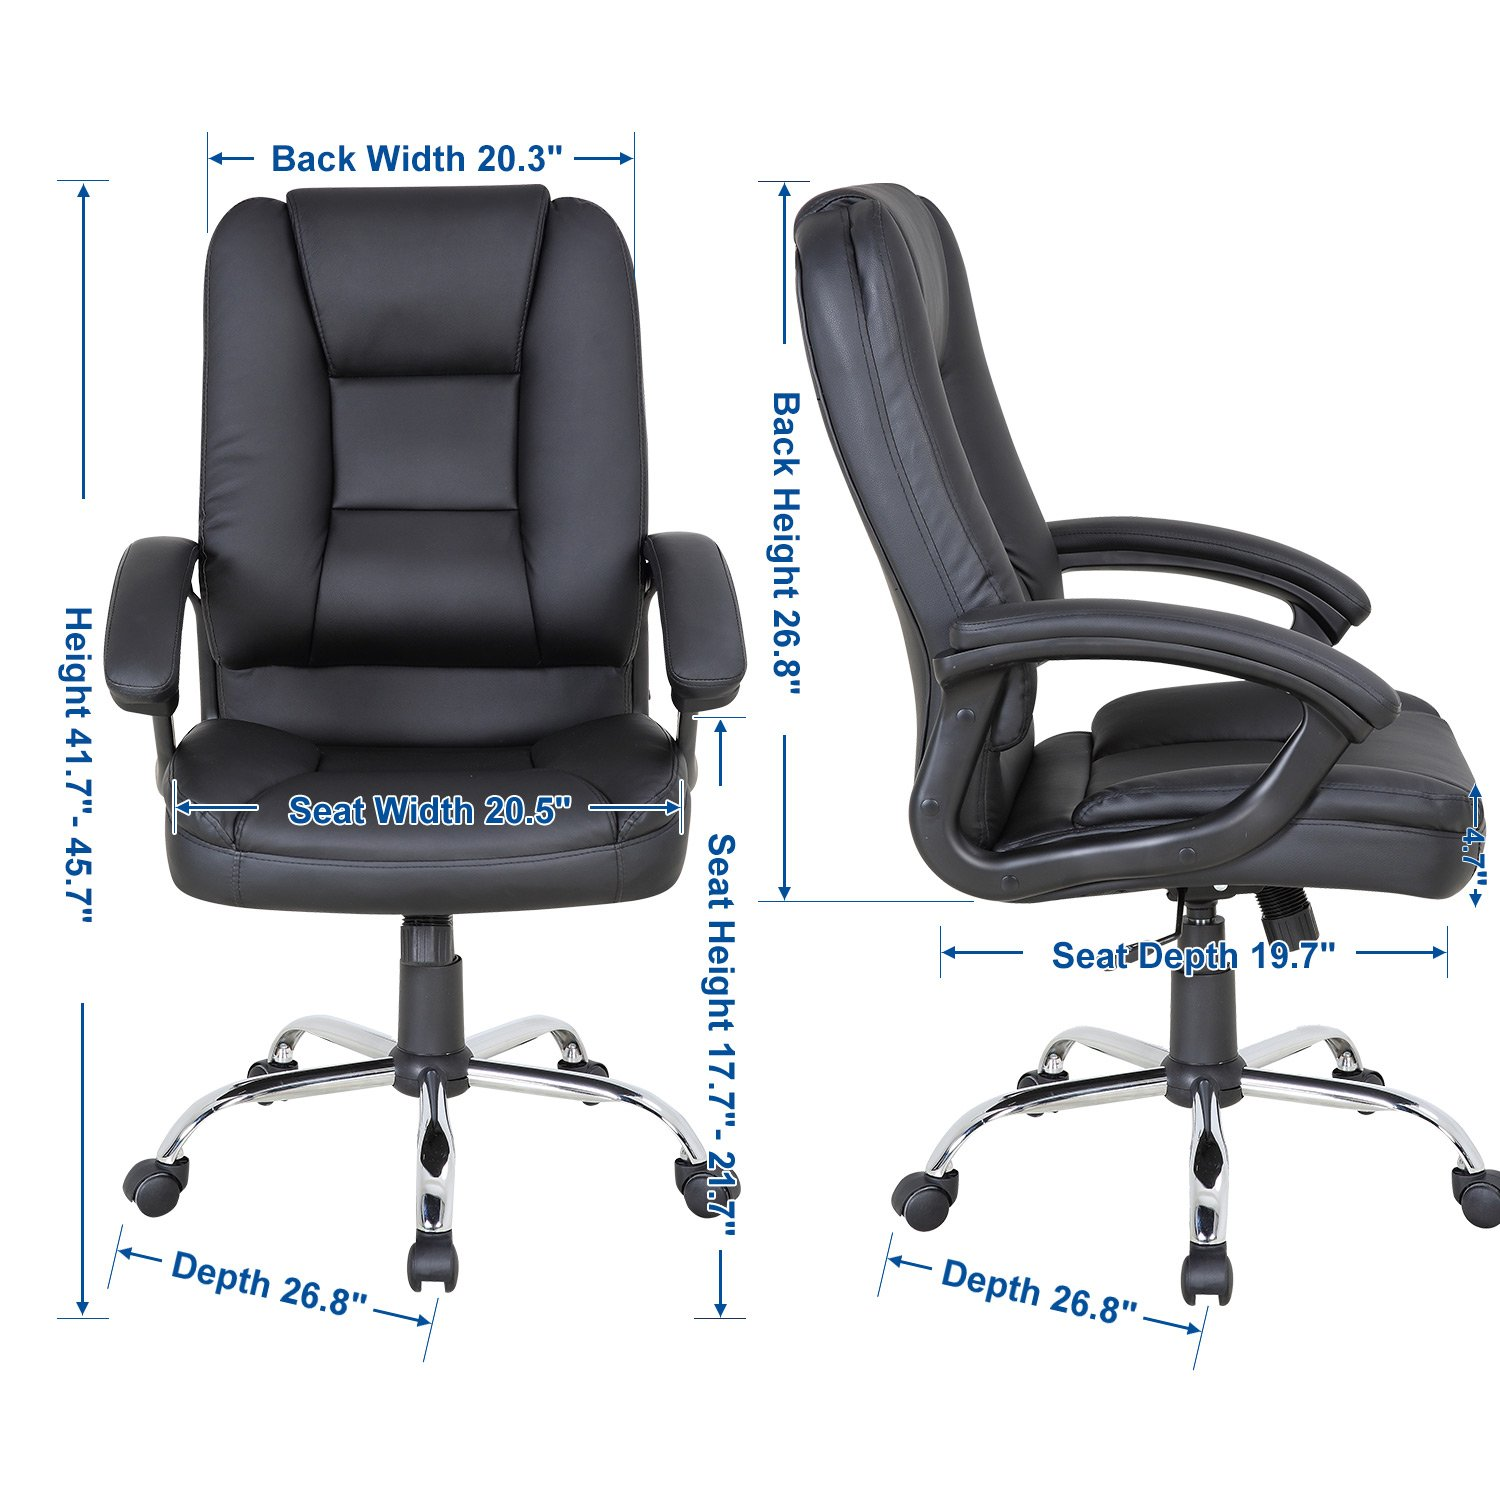 LCH PU Leather Office Chair Swivel Executive Chair with Tilt Function and Thick Seat, Ergonomic Computer Chair Headrest and Lumbar Support (Black) by LCH (Image #6)